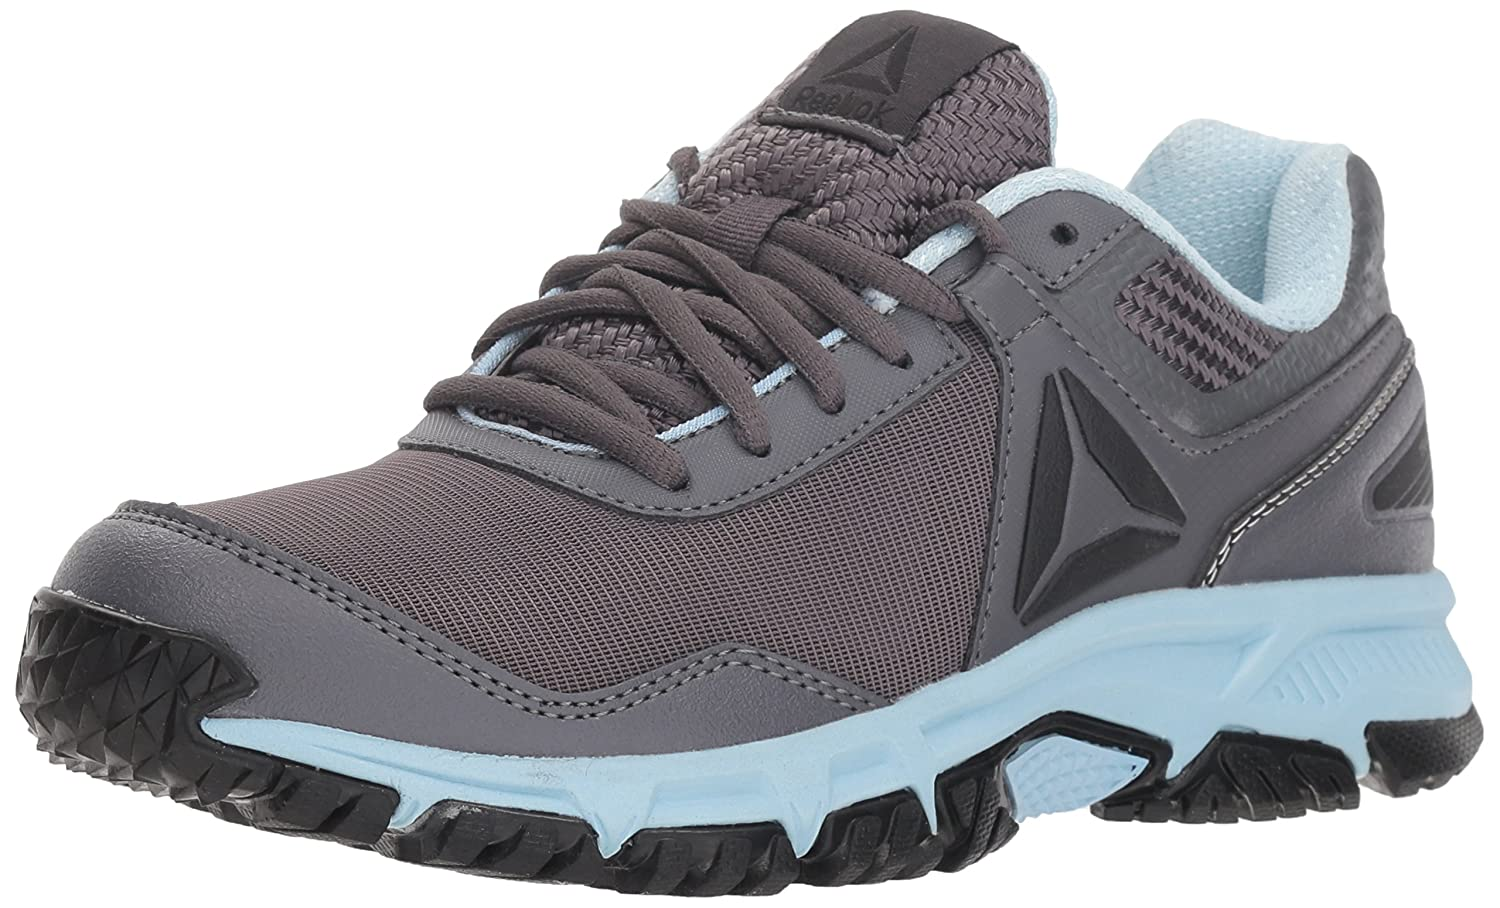 Reebok Women's Ridgerider Trail 3.0 Sneaker B077ZK5DSD 8 M US|Ash Grey/Dreamy Blue/Blac